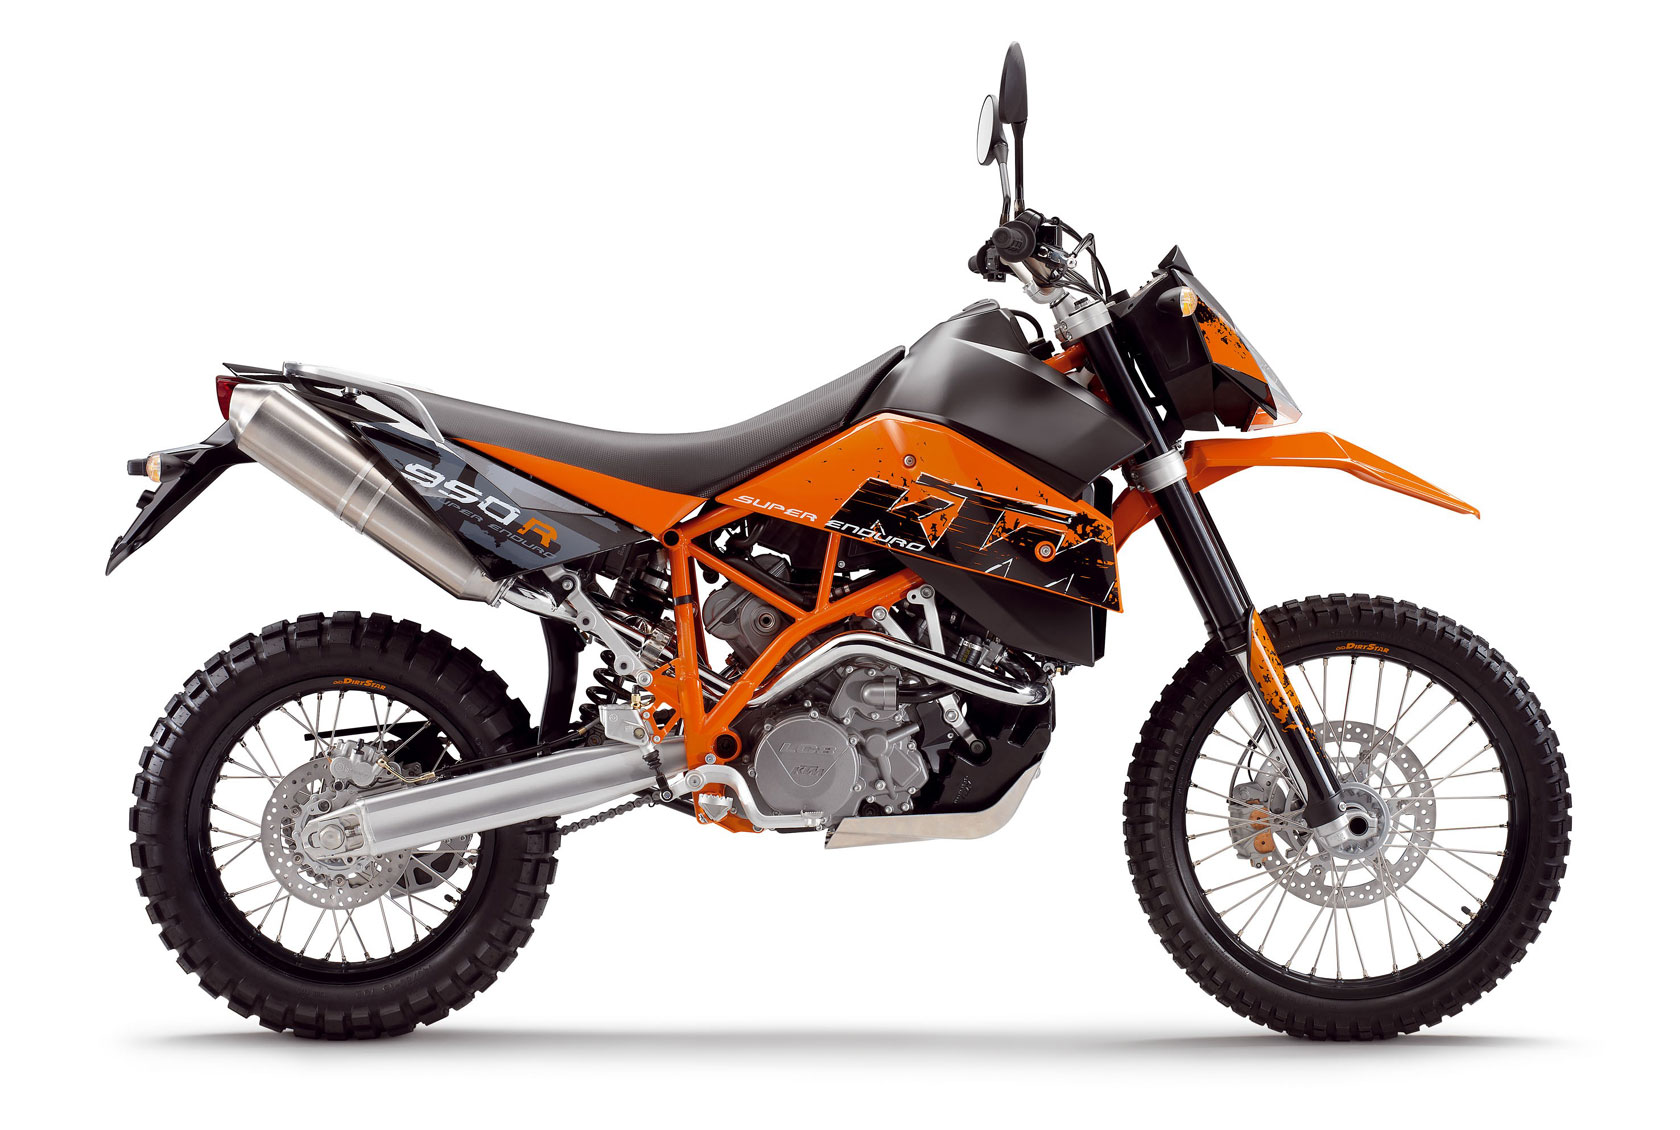 2009 ktm 950 super enduro r enduro h wallpaper 1680x1130 93070 wallpaperup. Black Bedroom Furniture Sets. Home Design Ideas